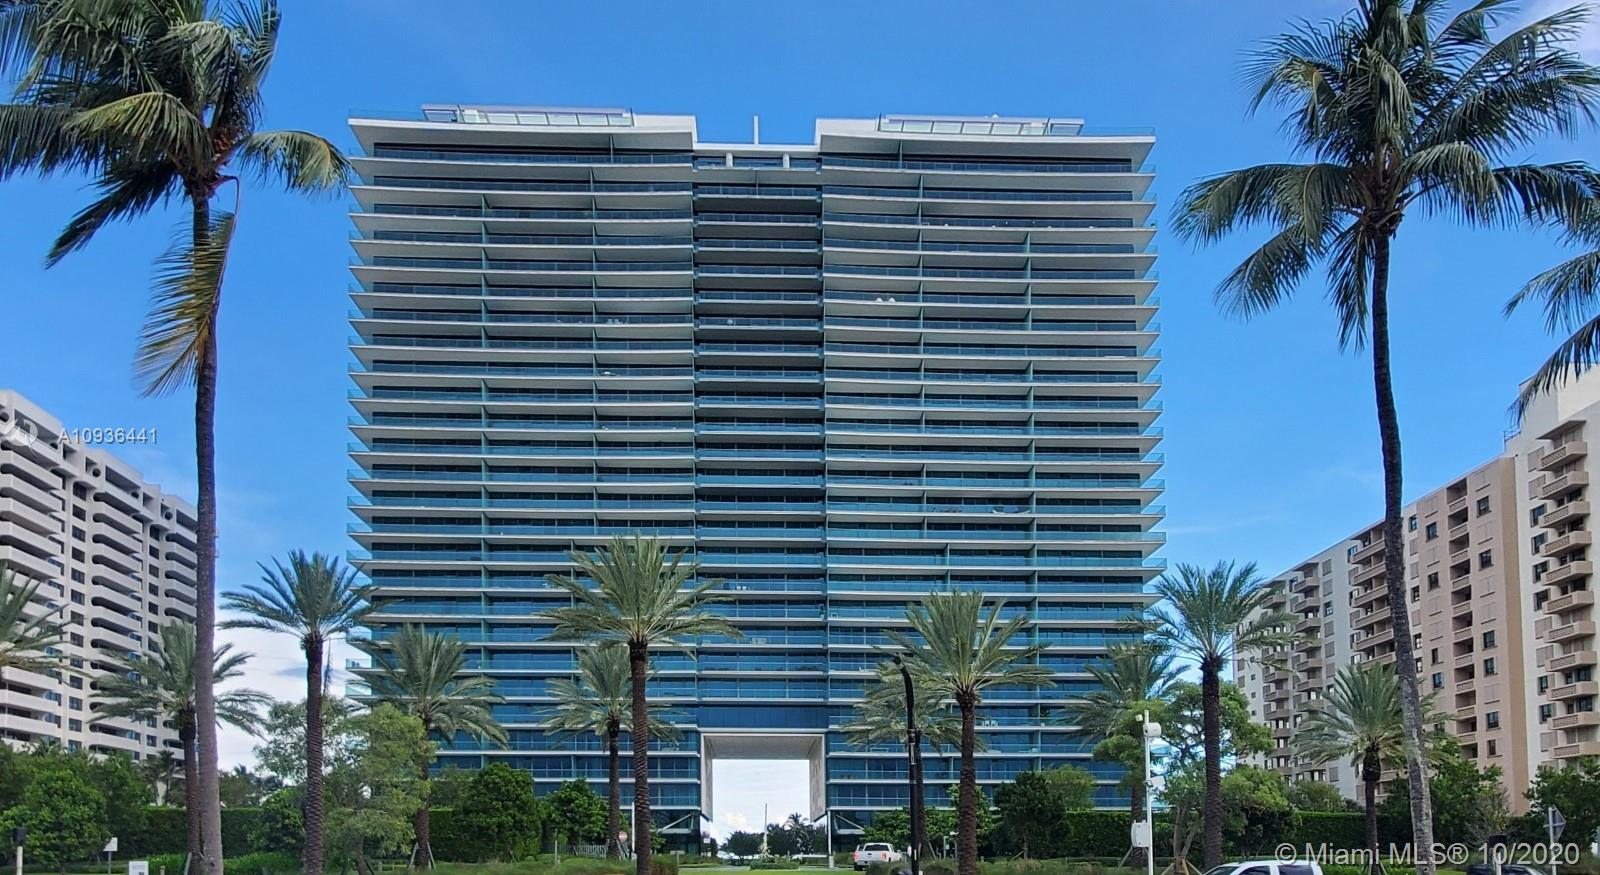 10201 Collins Ave, Unit #2606 Luxury Real Estate